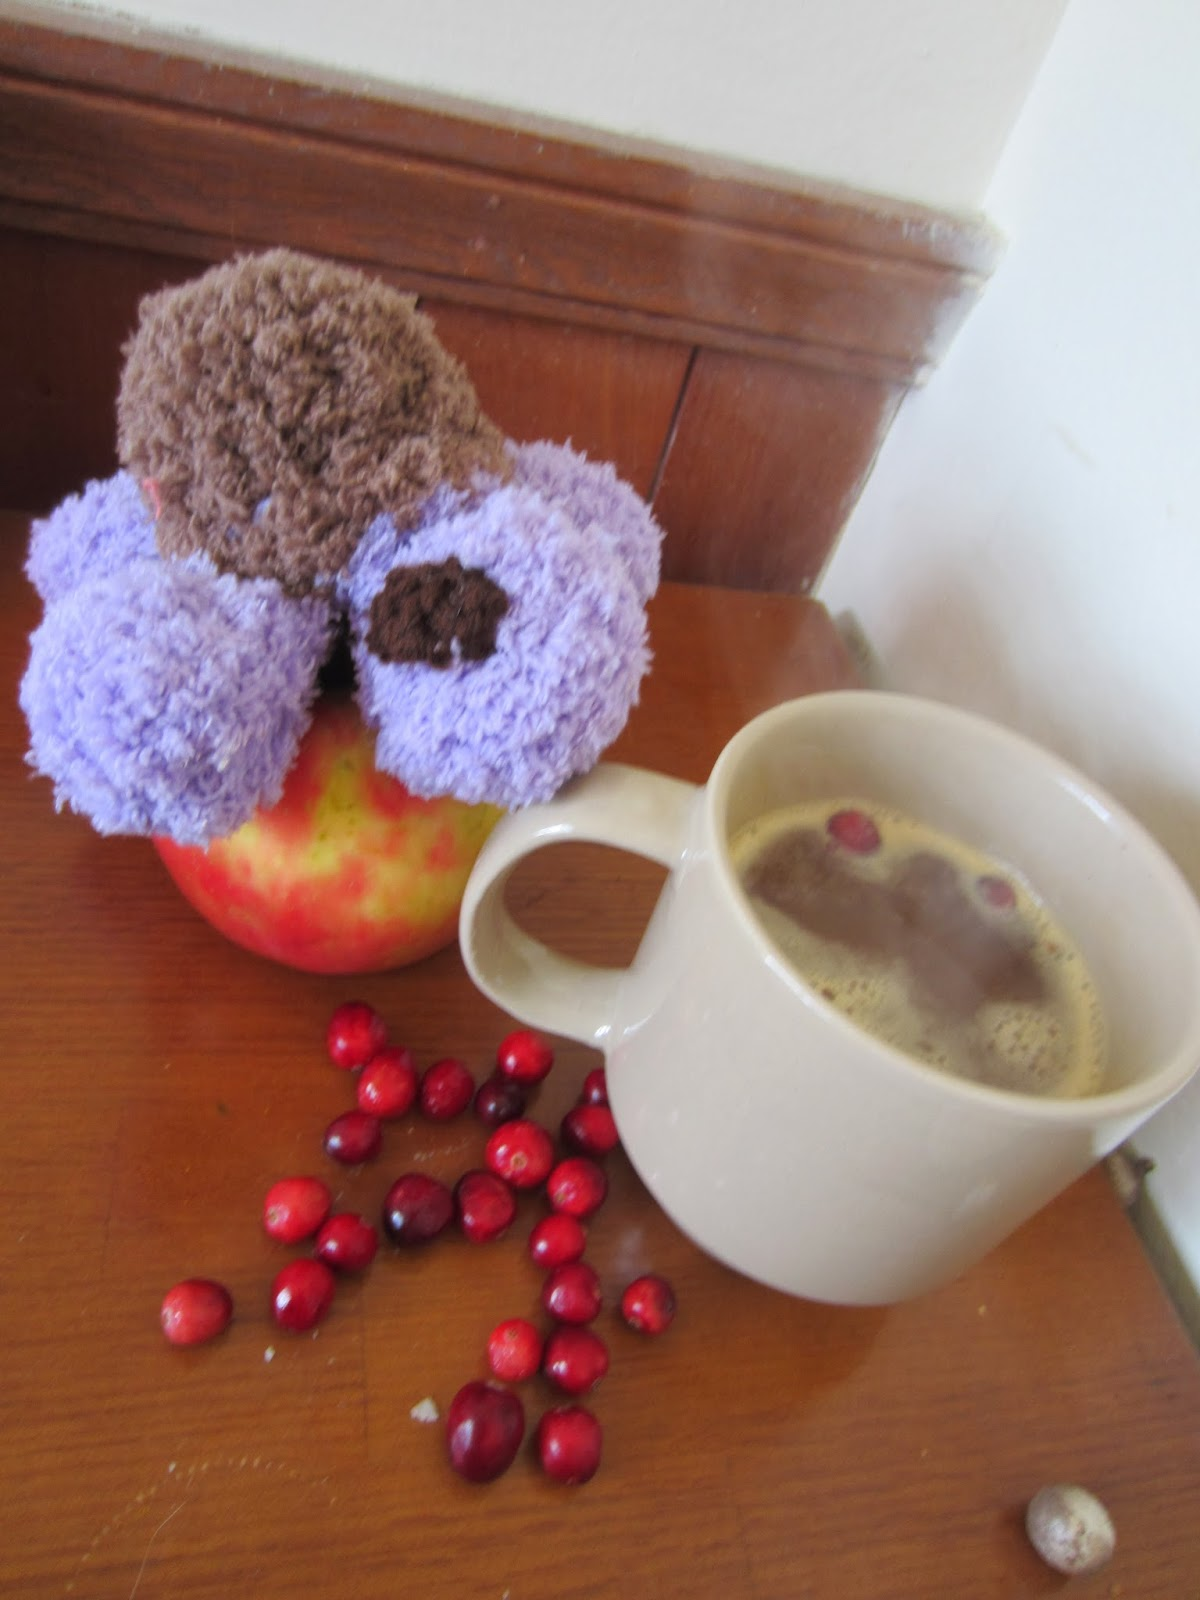 Sweet To Make Your Mouth And Tummy Warm Lila The Turtle Helped Out